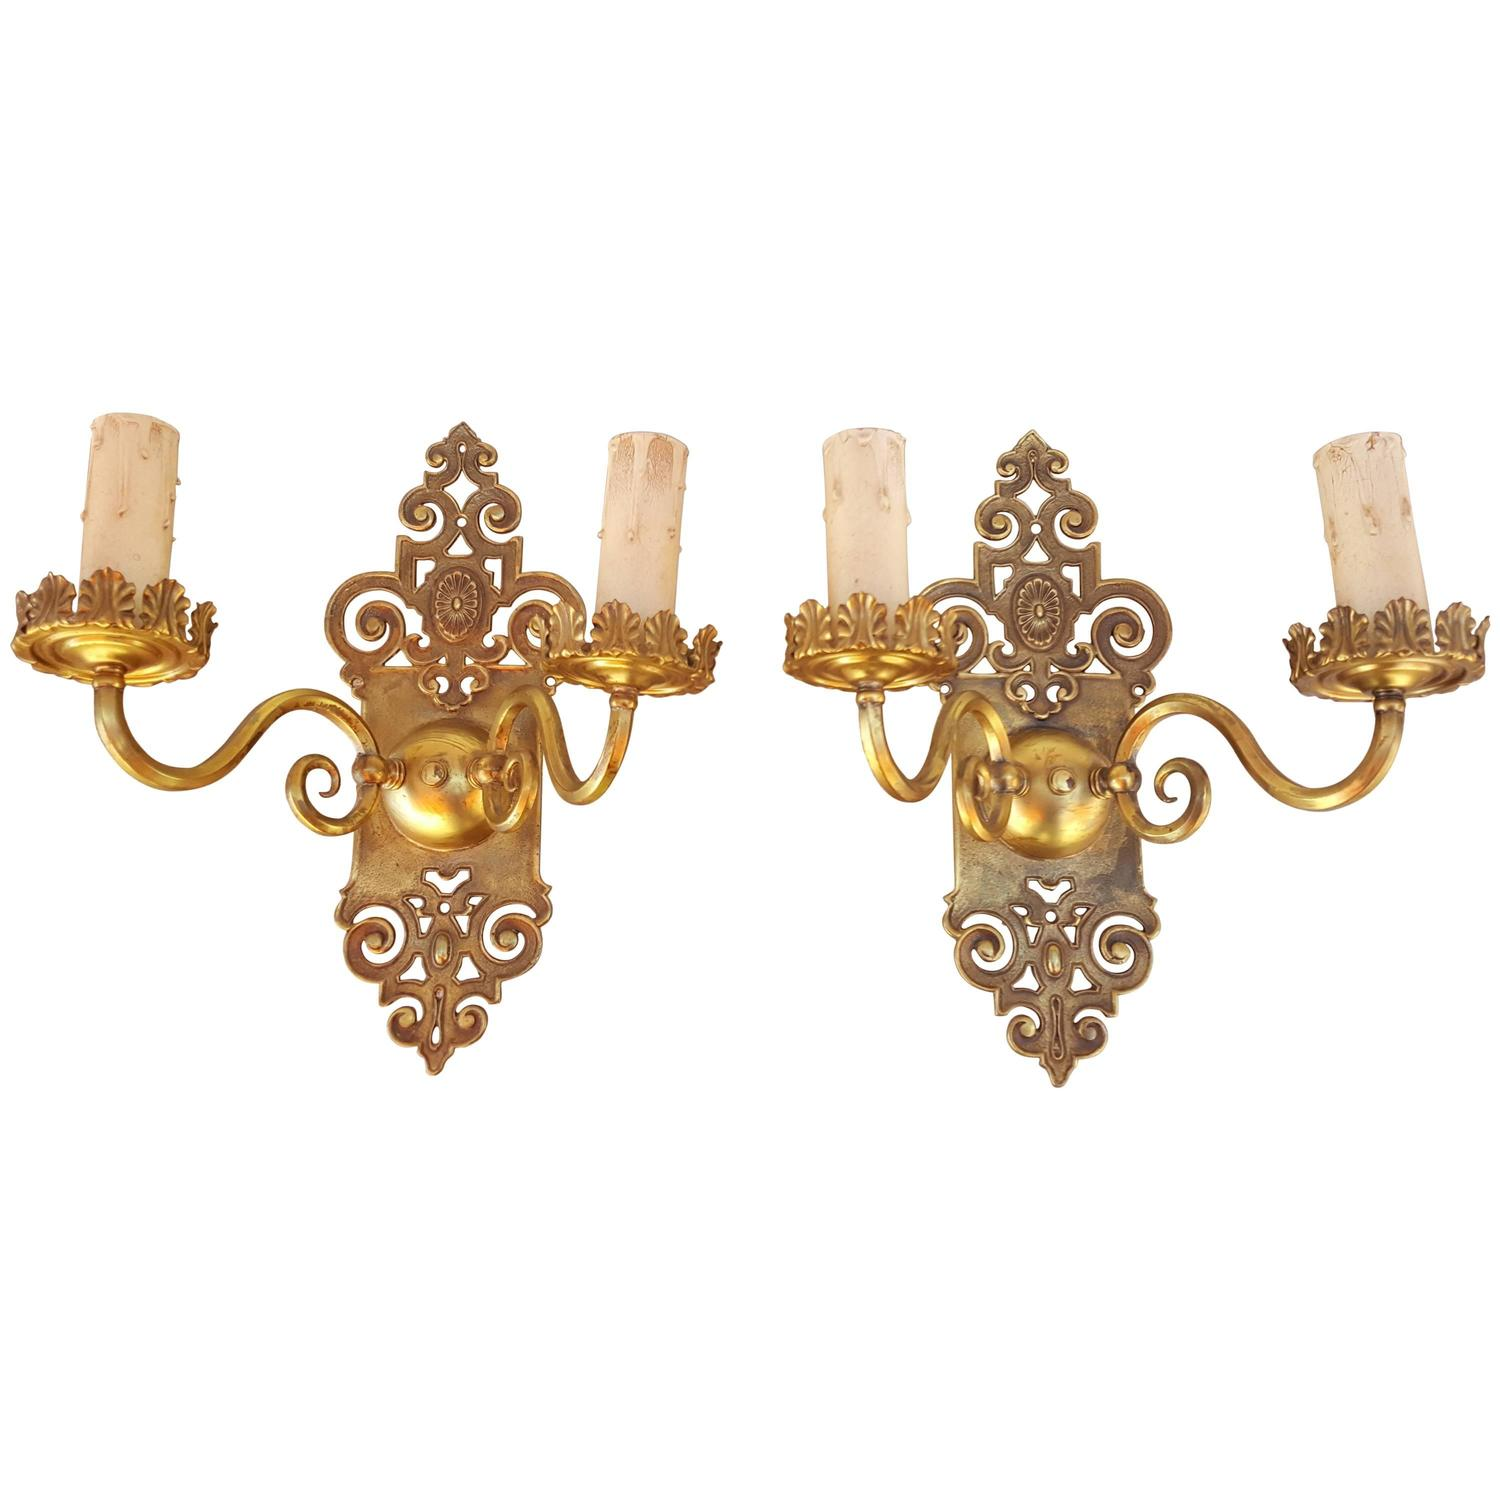 Solid Brass Wall Sconces : Pair of 1930s Pierce Cut Solid Brass Wall Sconces For Sale at 1stdibs